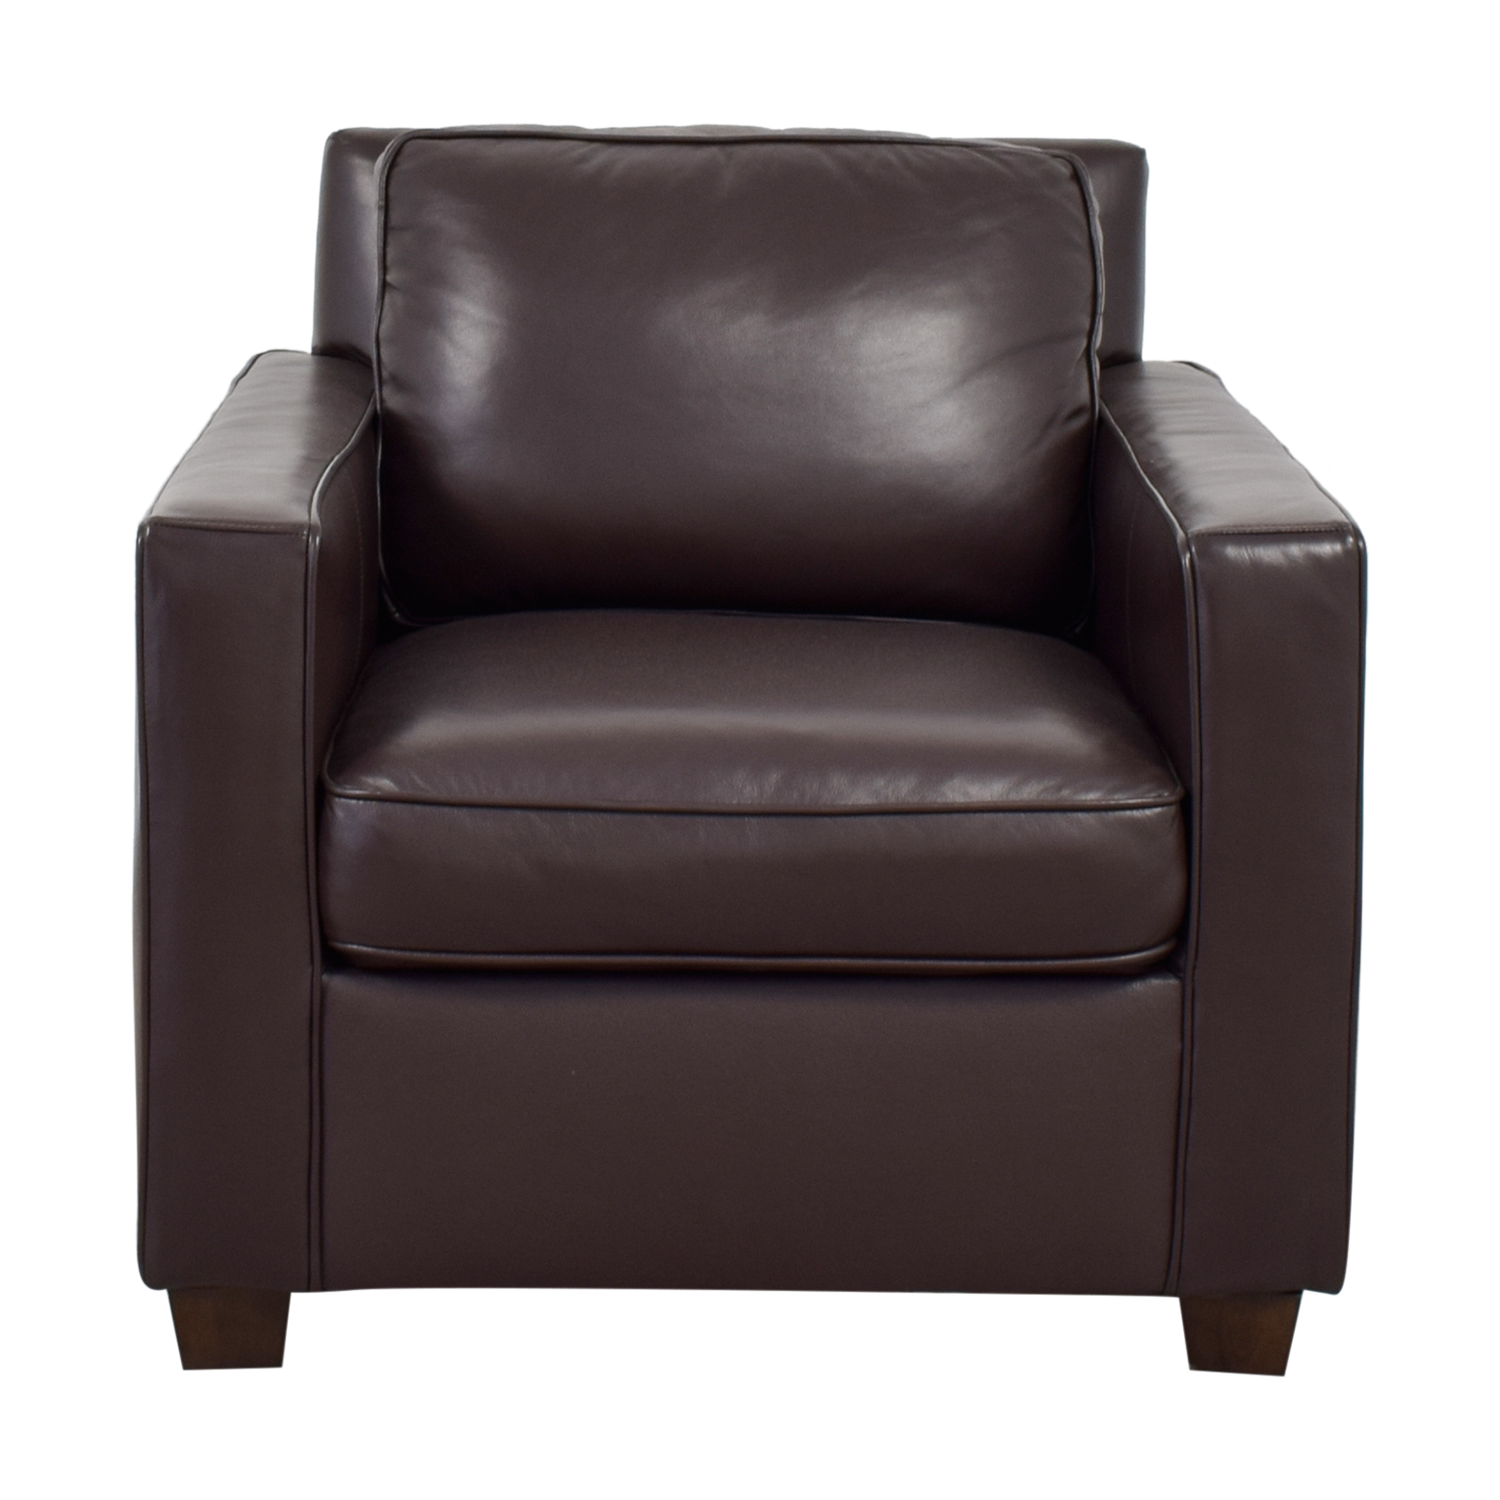 Buy West Elm Henry Brown Leather Arm Chair West Elm Chairs ...